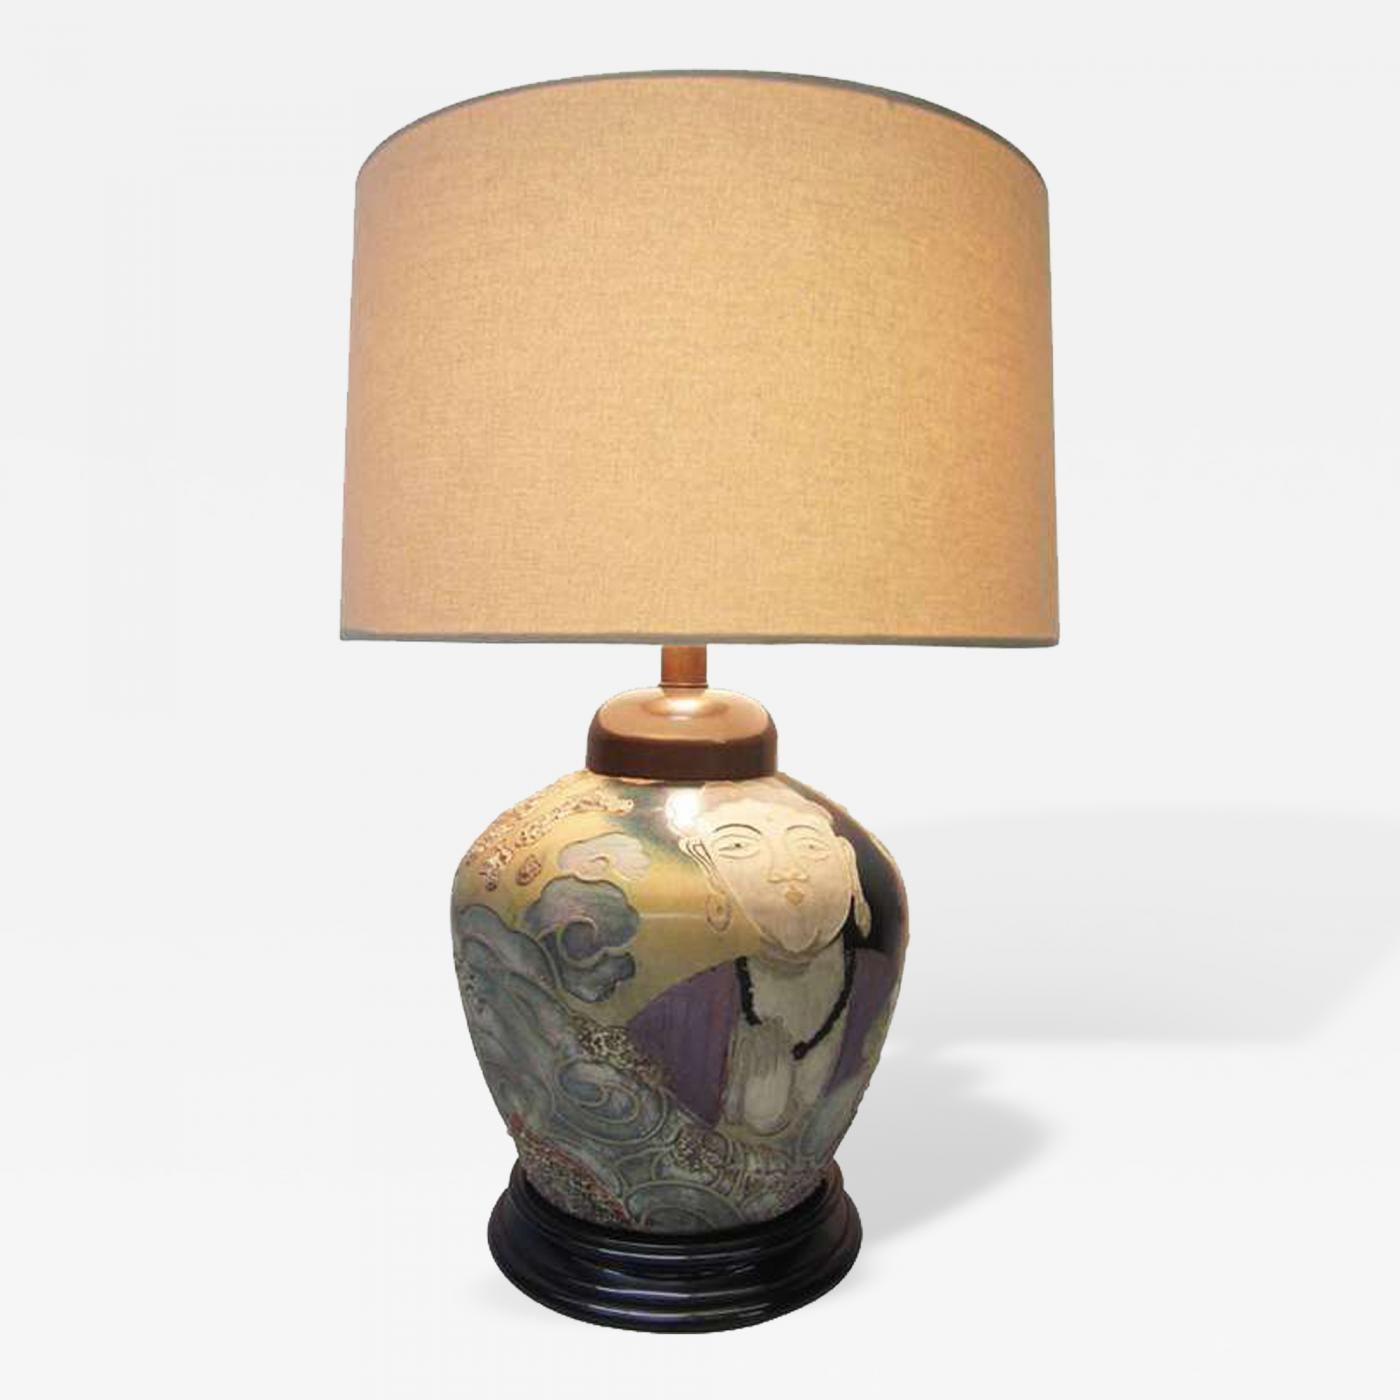 Frederick g cooper asian influence lamp by frederick cooper listings furniture lighting table lamps frederick g cooper geotapseo Image collections